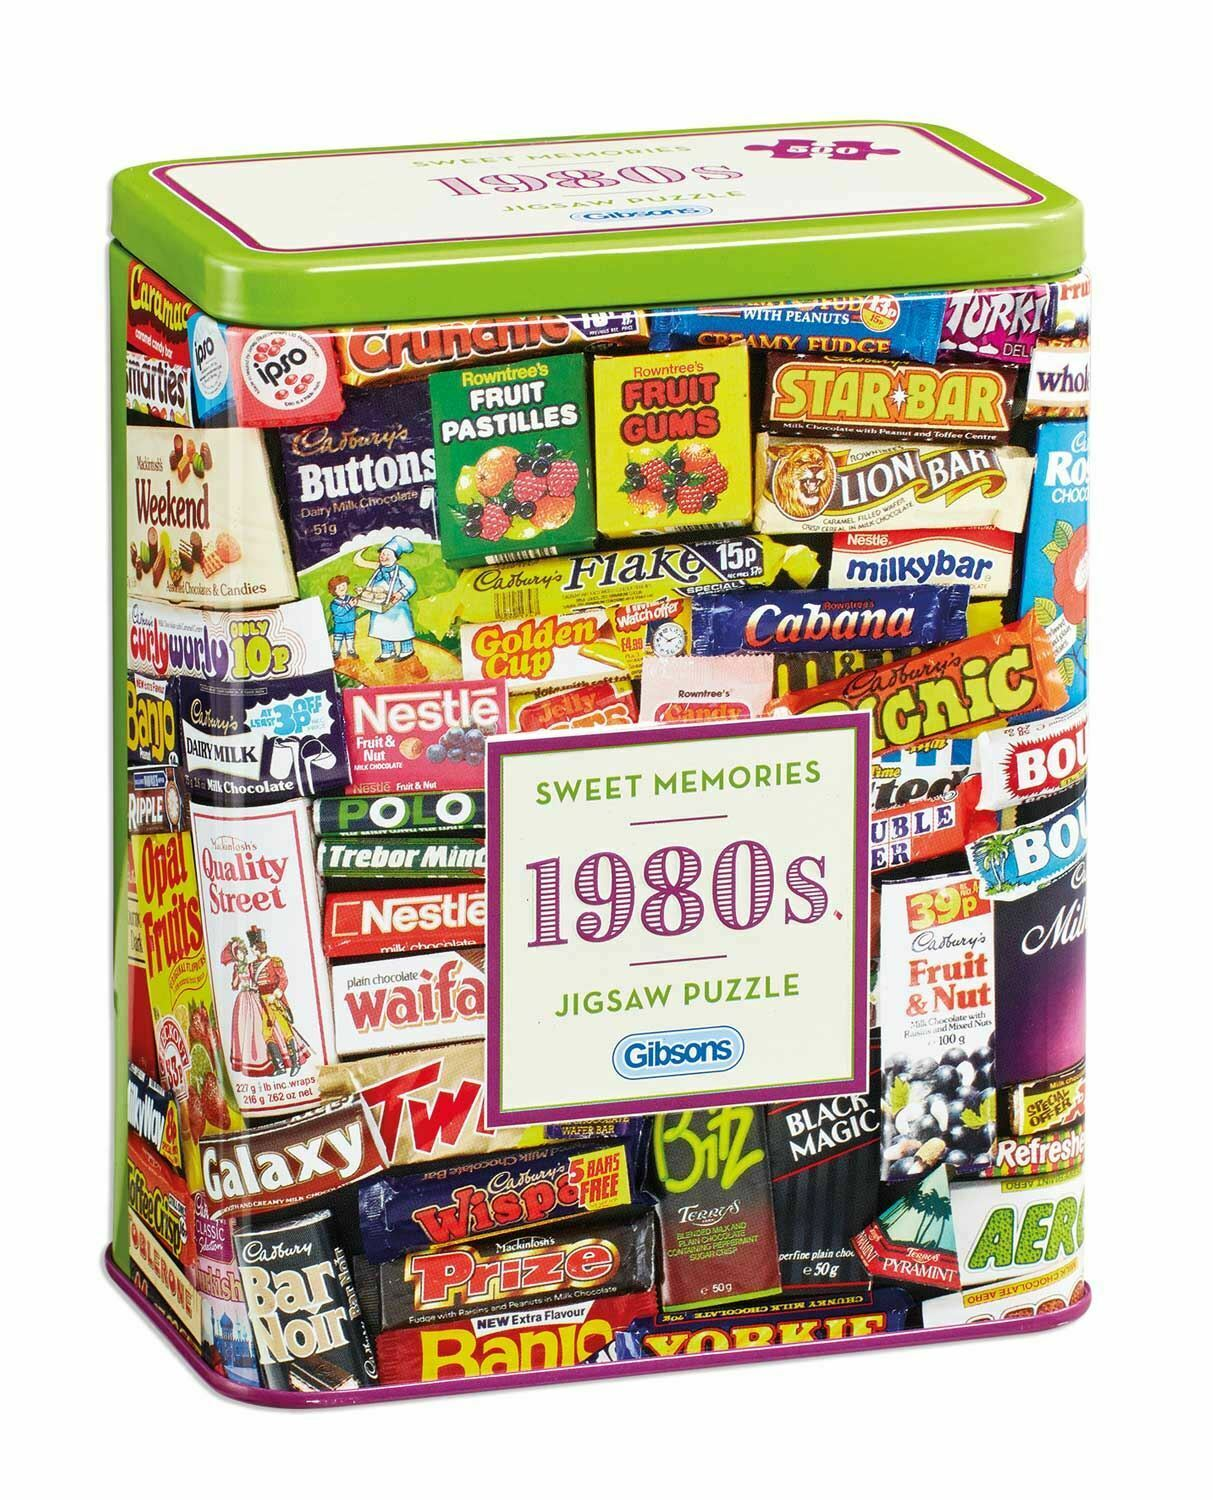 1980s Sweet Memories Jigsaw 500 pieces at www.dementiaworkshop.co.uk